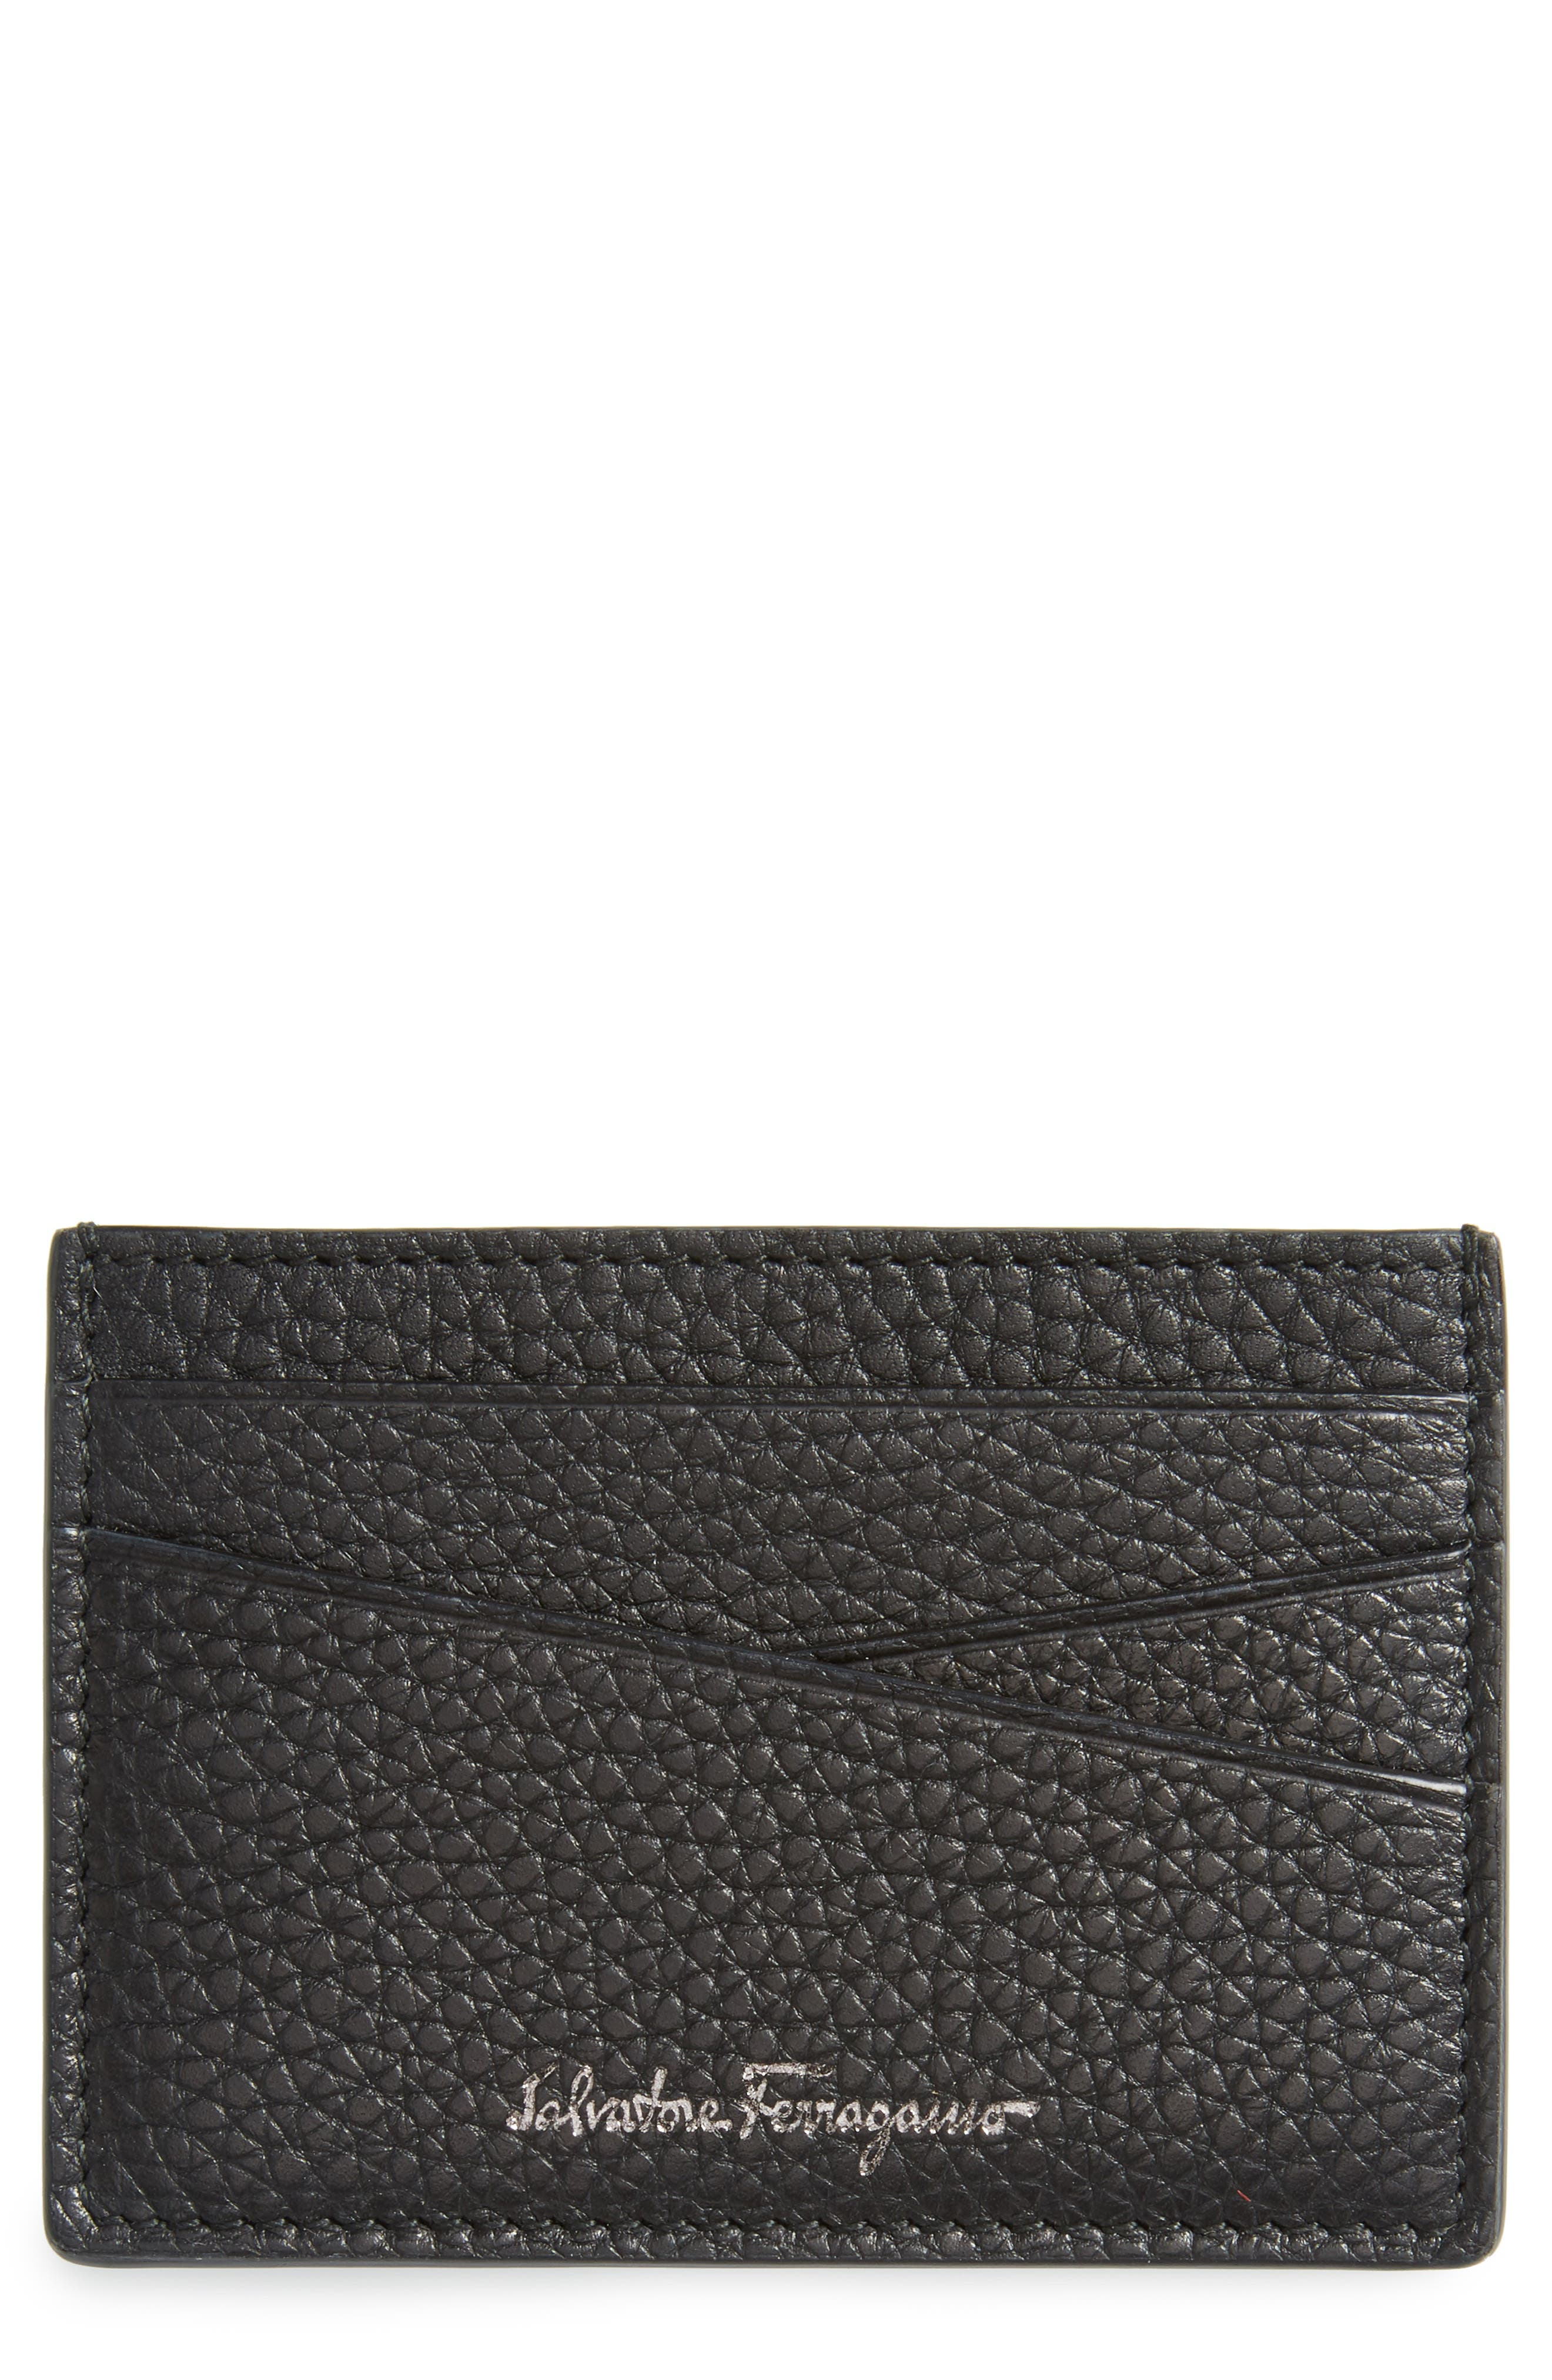 Firenze Leather Card Case,                         Main,                         color, 001